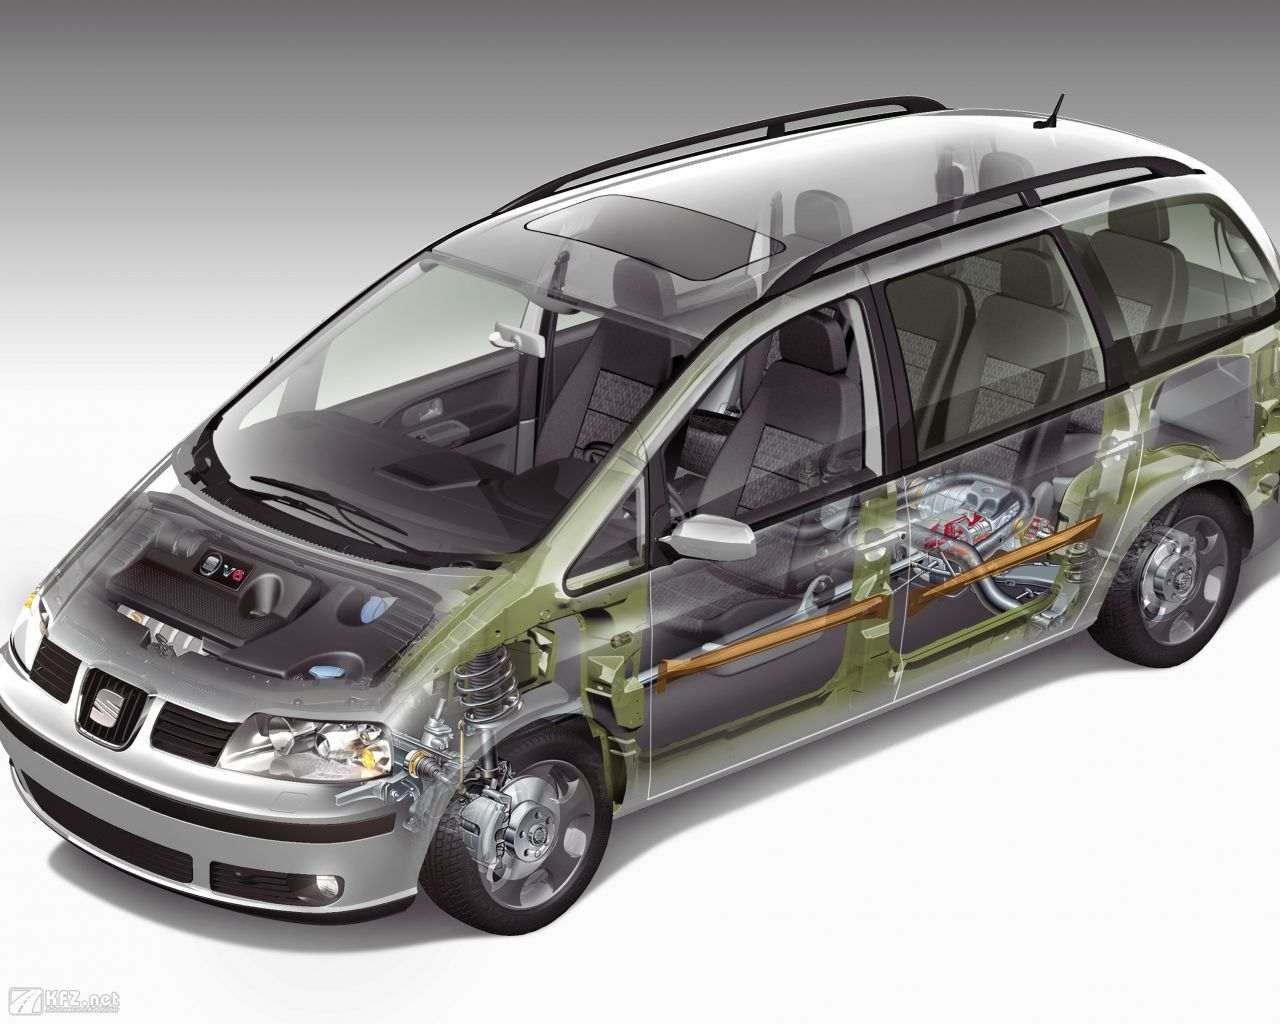 seat alhambra bilder die spanische gro raum limousine. Black Bedroom Furniture Sets. Home Design Ideas